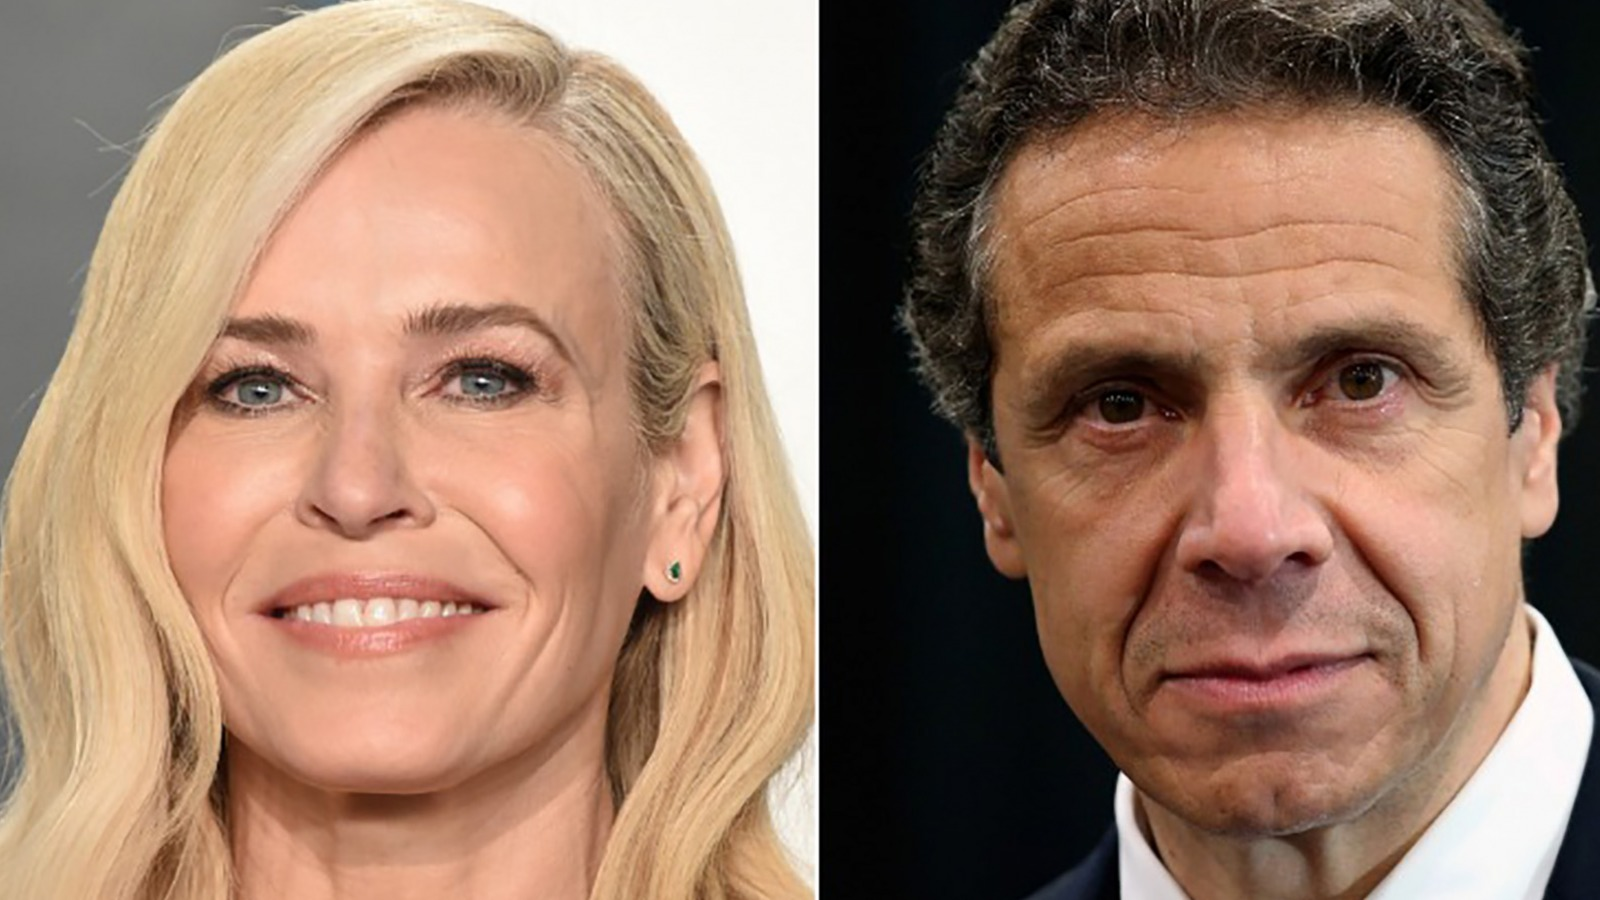 Chelsea Handler says longtime crush Andrew Cuomo ghosted her